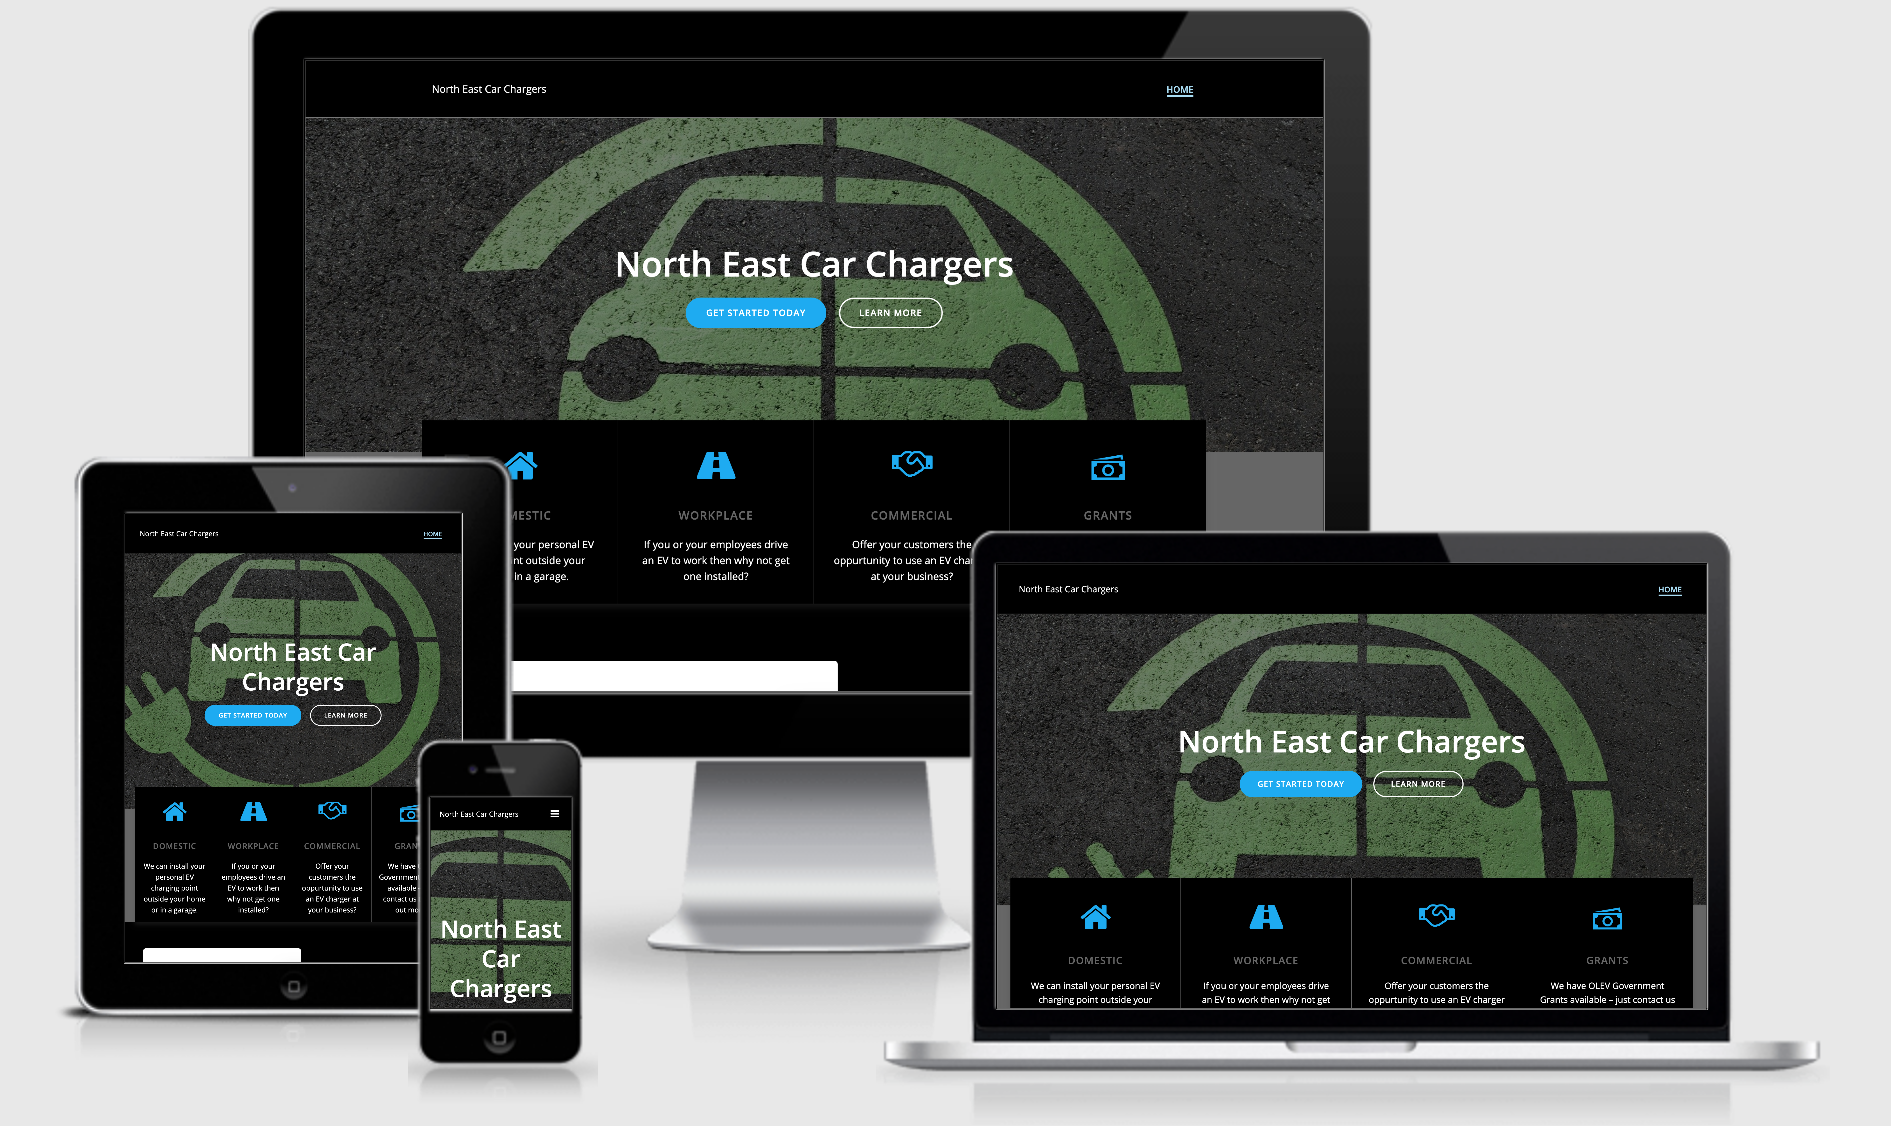 North East Car Chargers (NECC)